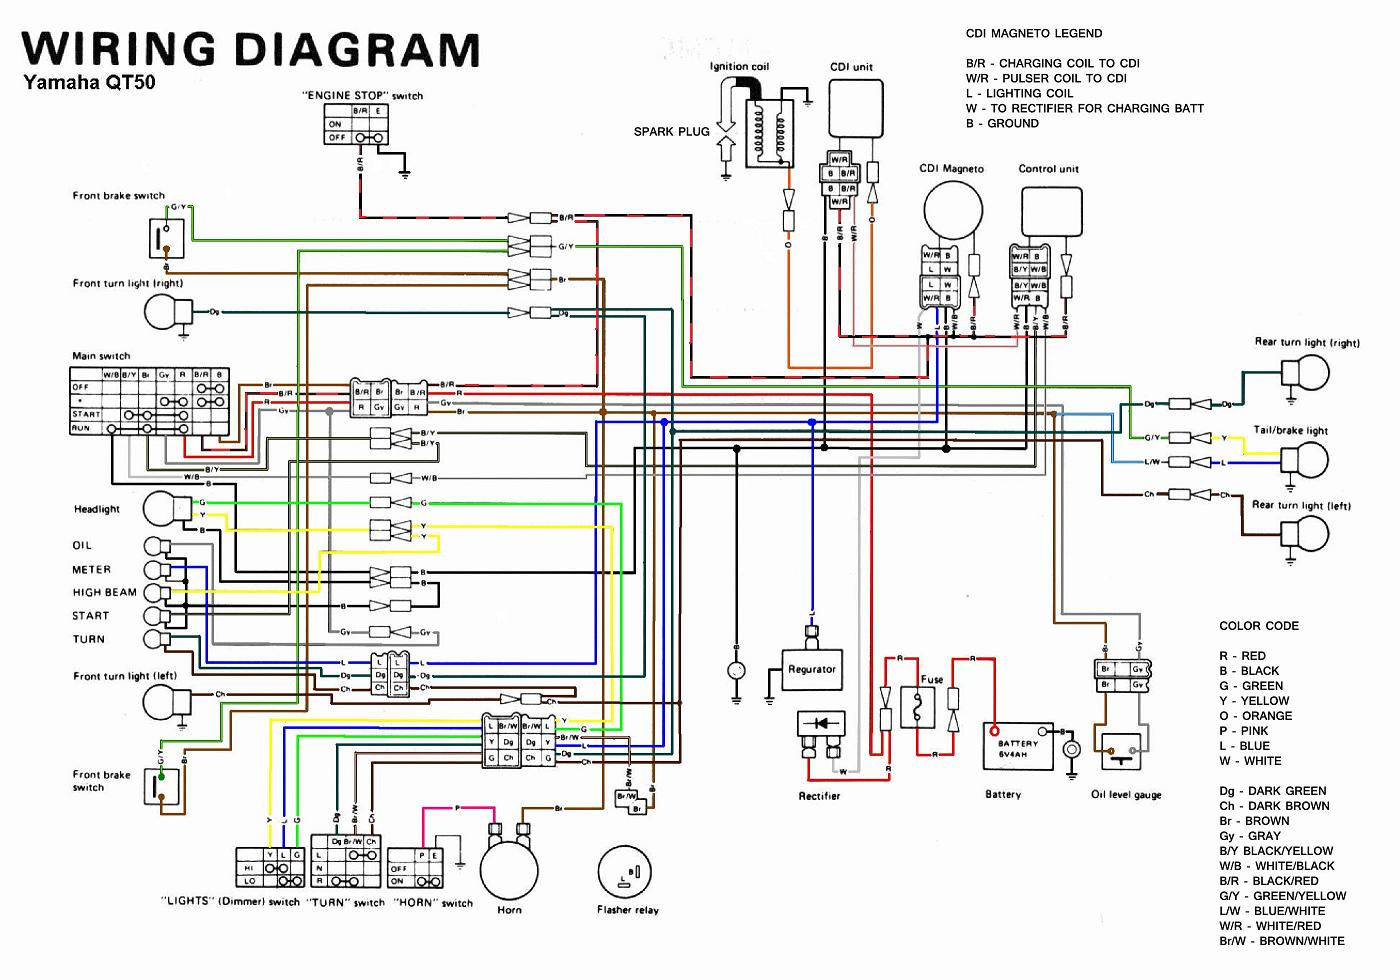 Kawasaki Carburetor Parts Diagram Block And Schematic Diagrams Vn750 Wiring Yamaha Qt50 Luvin Other 2002 Vulcan 750